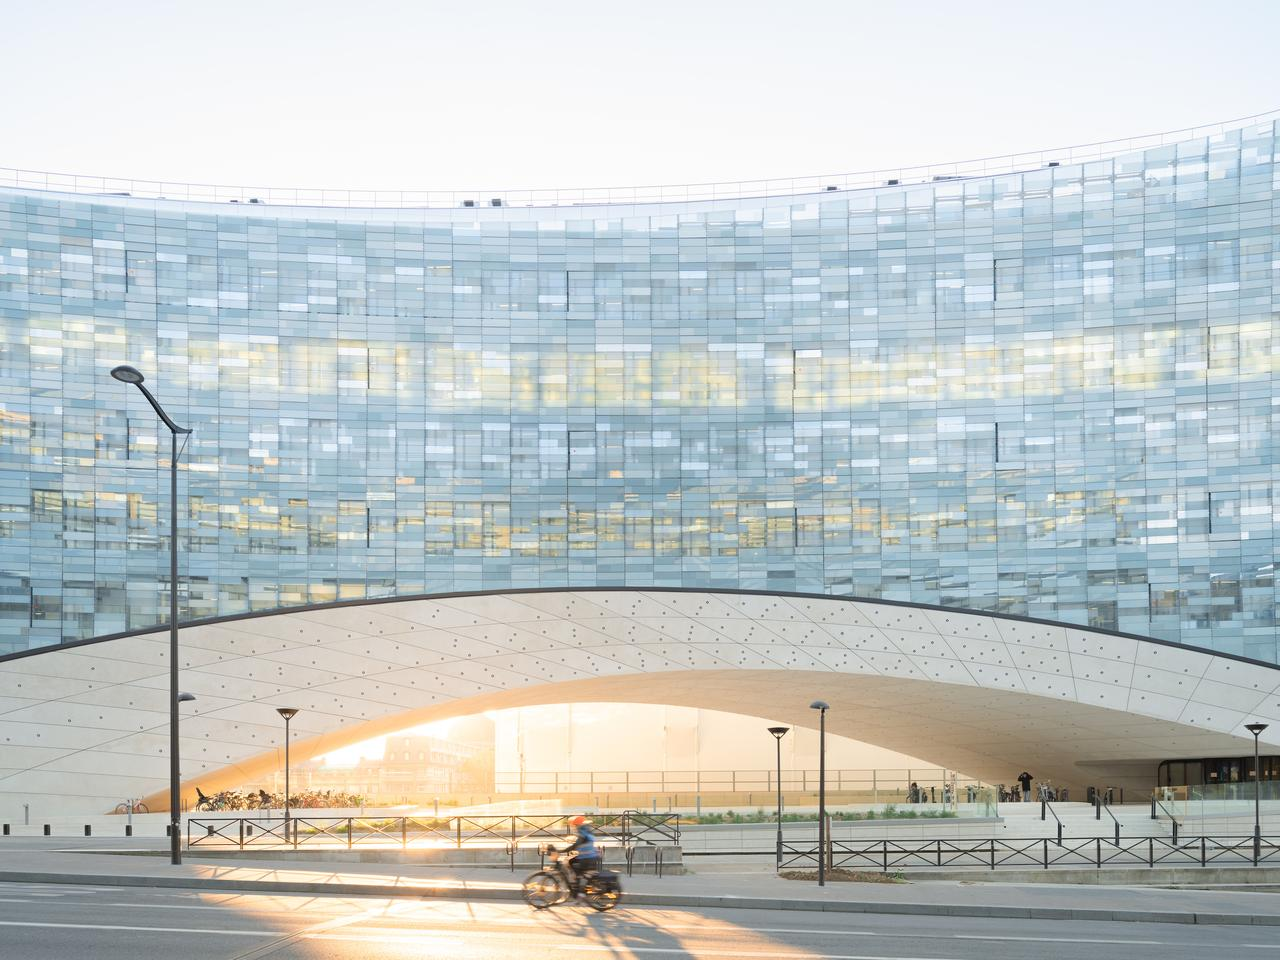 The new Le Monde headquarters spans a length of 80 m (262 ft)